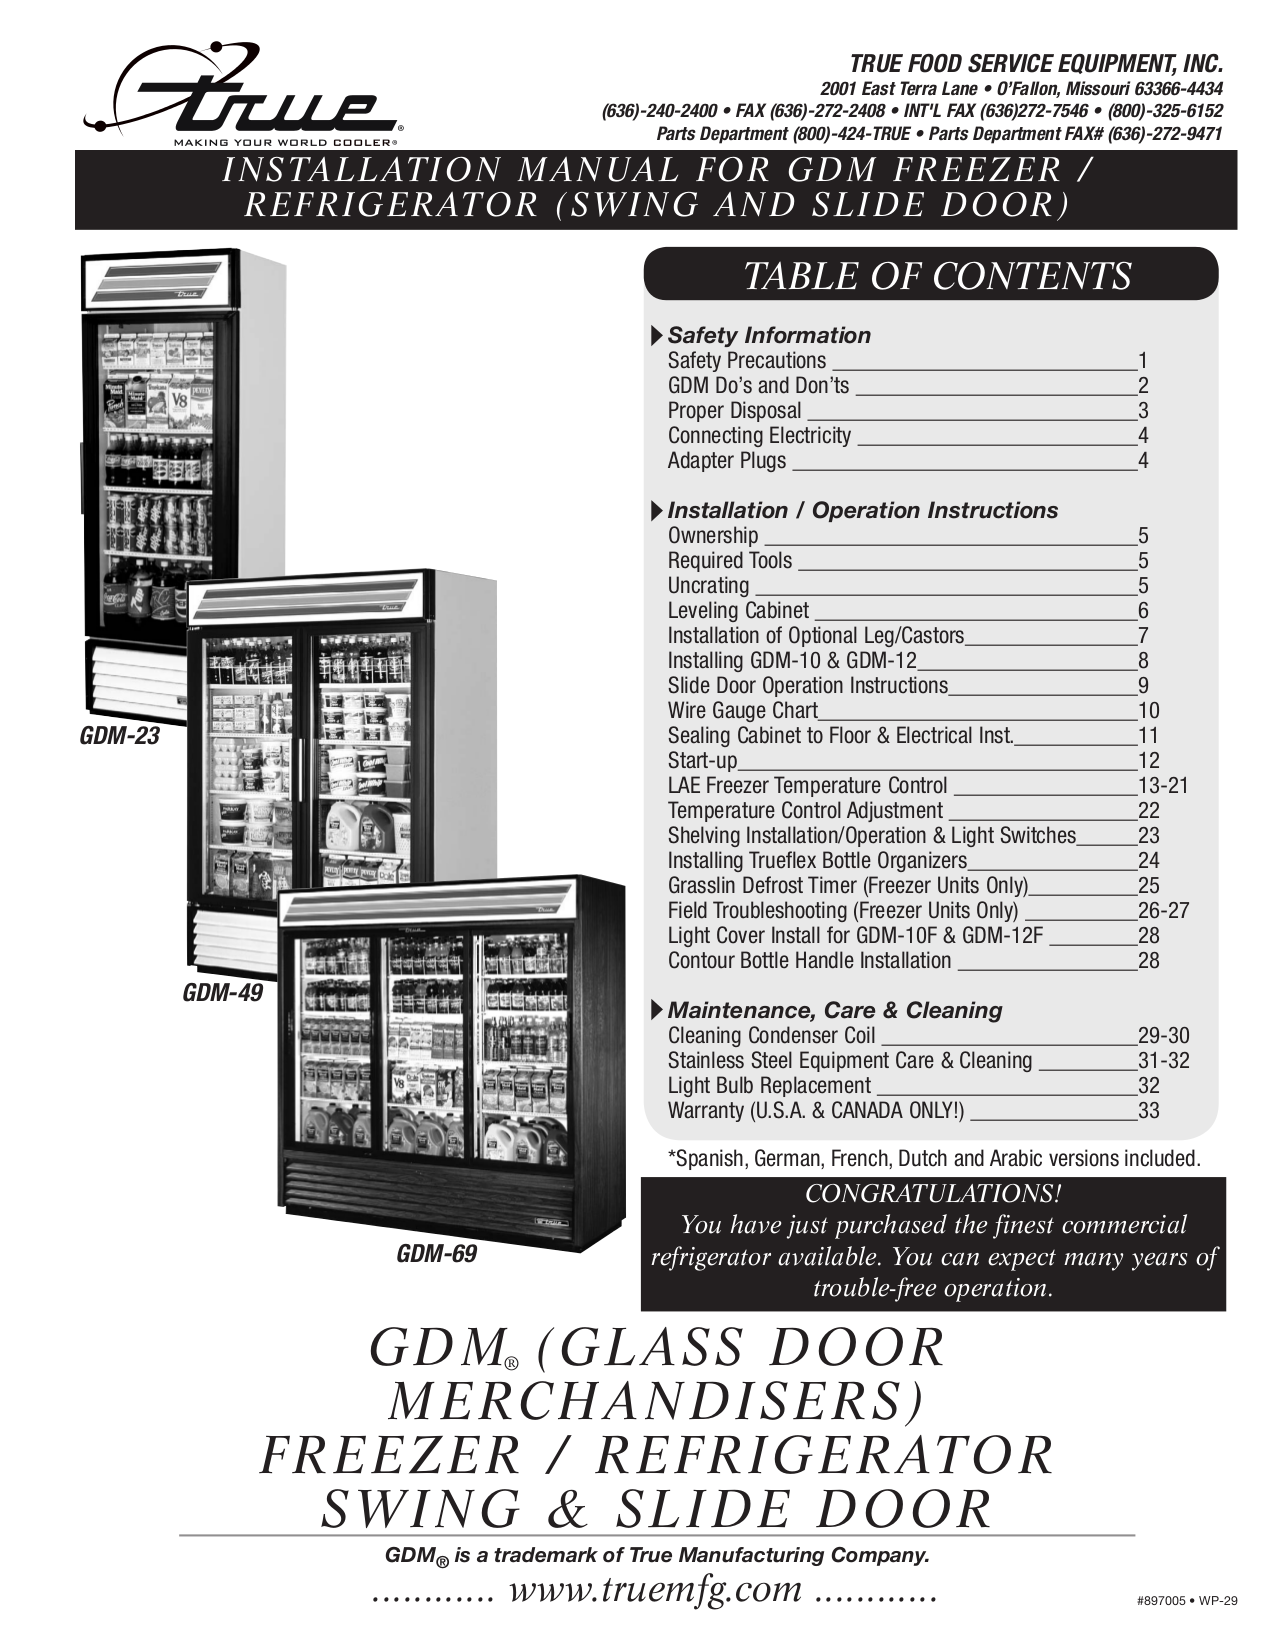 GDM Freezer_Refrigerator.pdf 0 download free pdf for true gdm 26 refrigerator manual True Cooler Wiring Diagrams at fashall.co